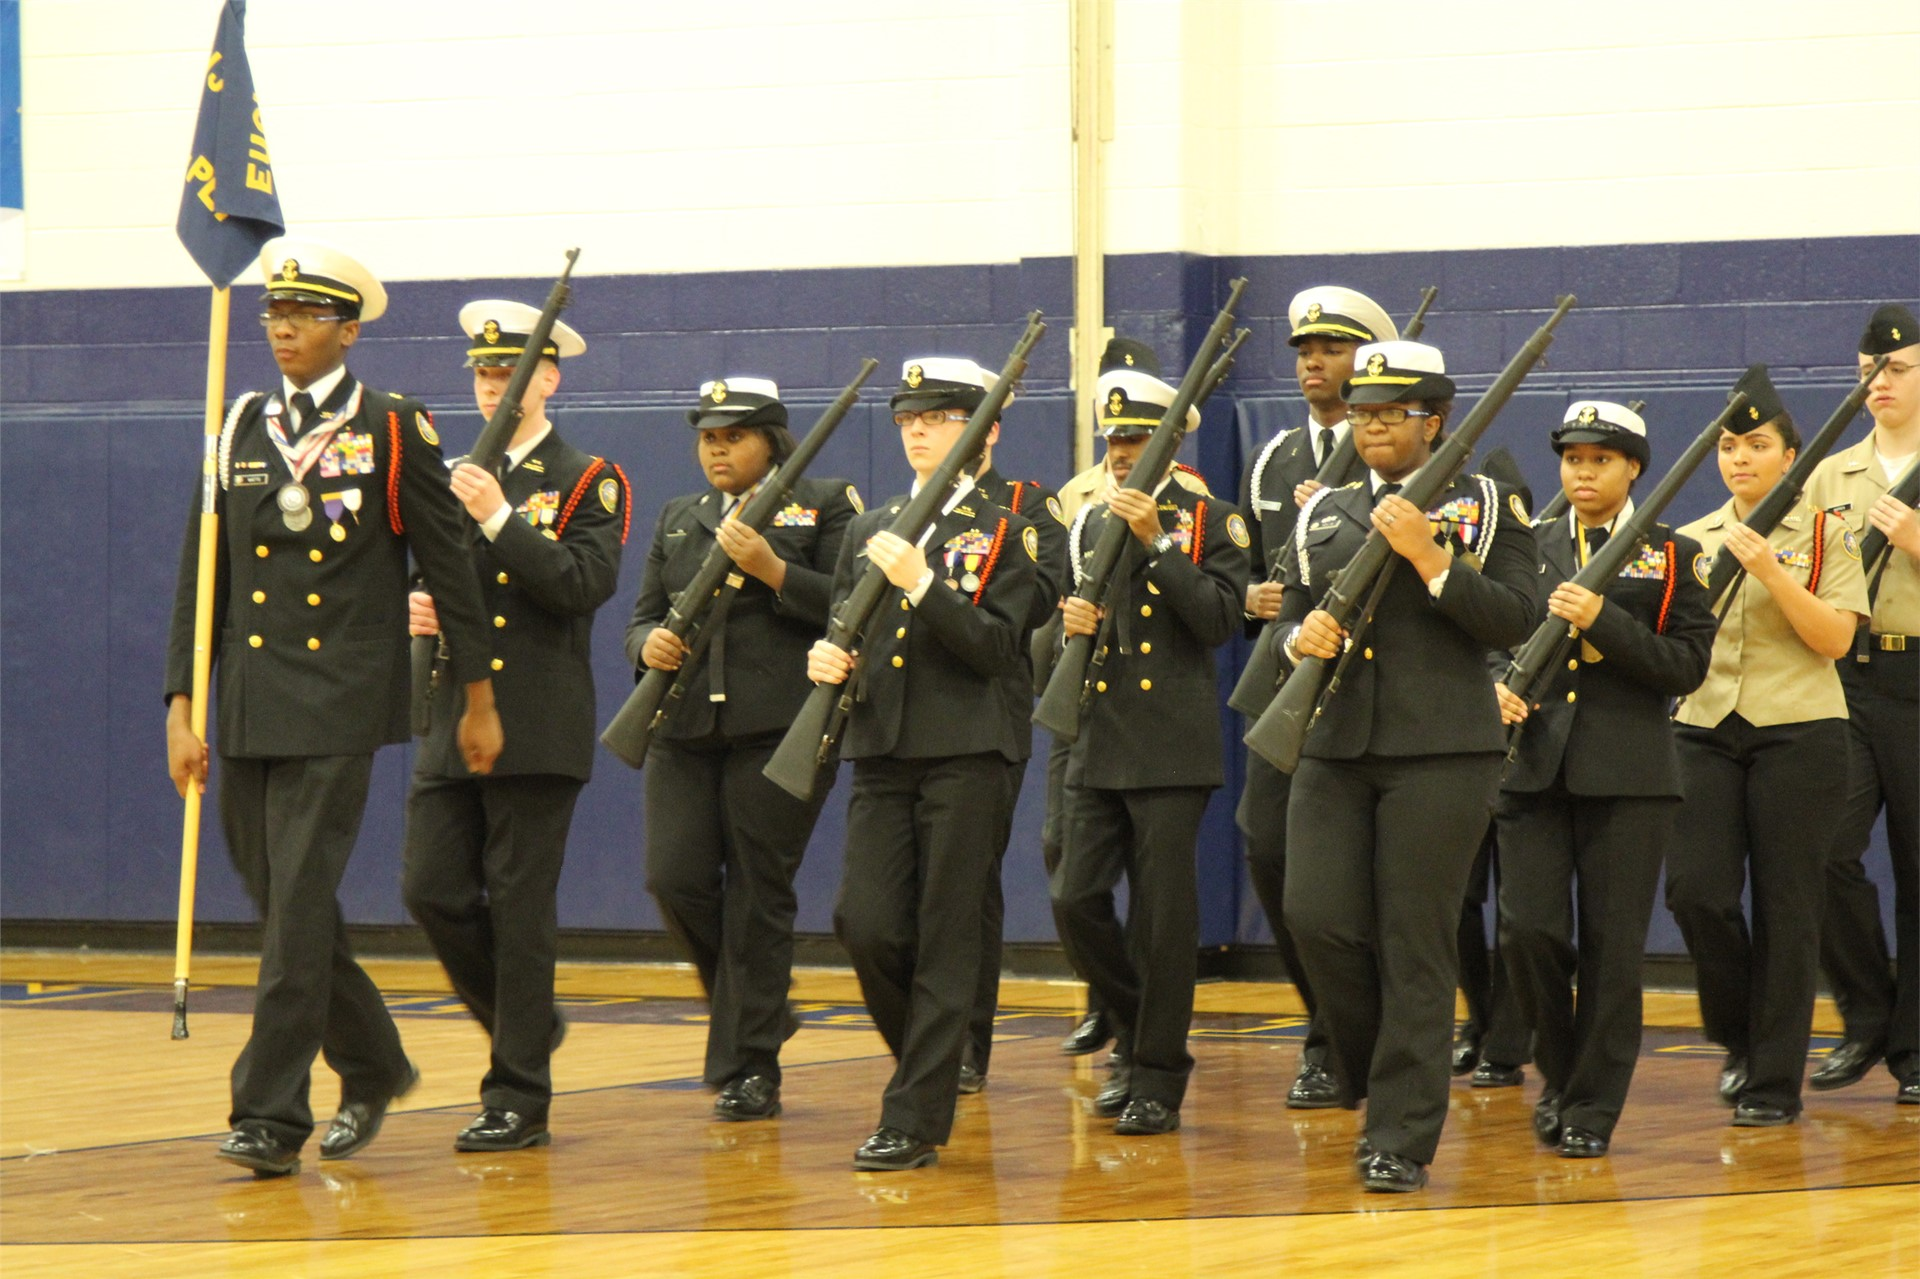 NJROTC students marching